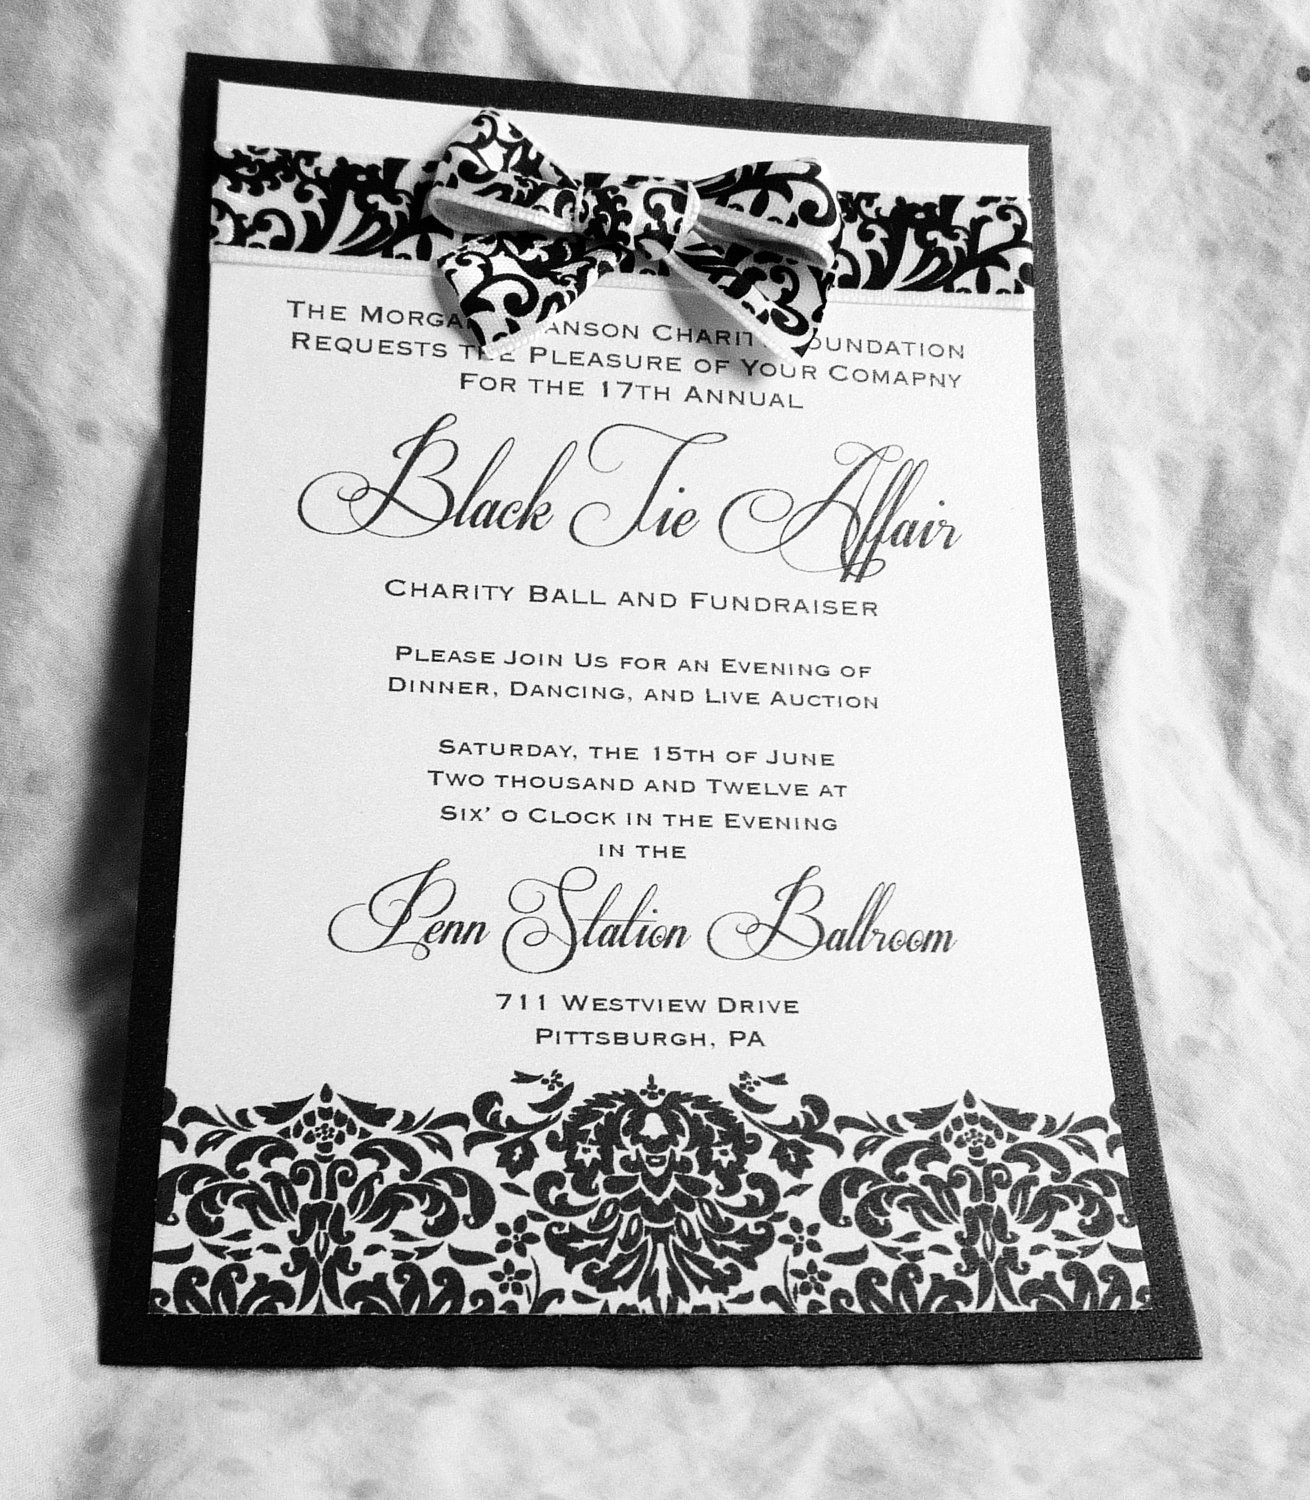 Classic Damask Black And White Event Invitations My Etsy Shop